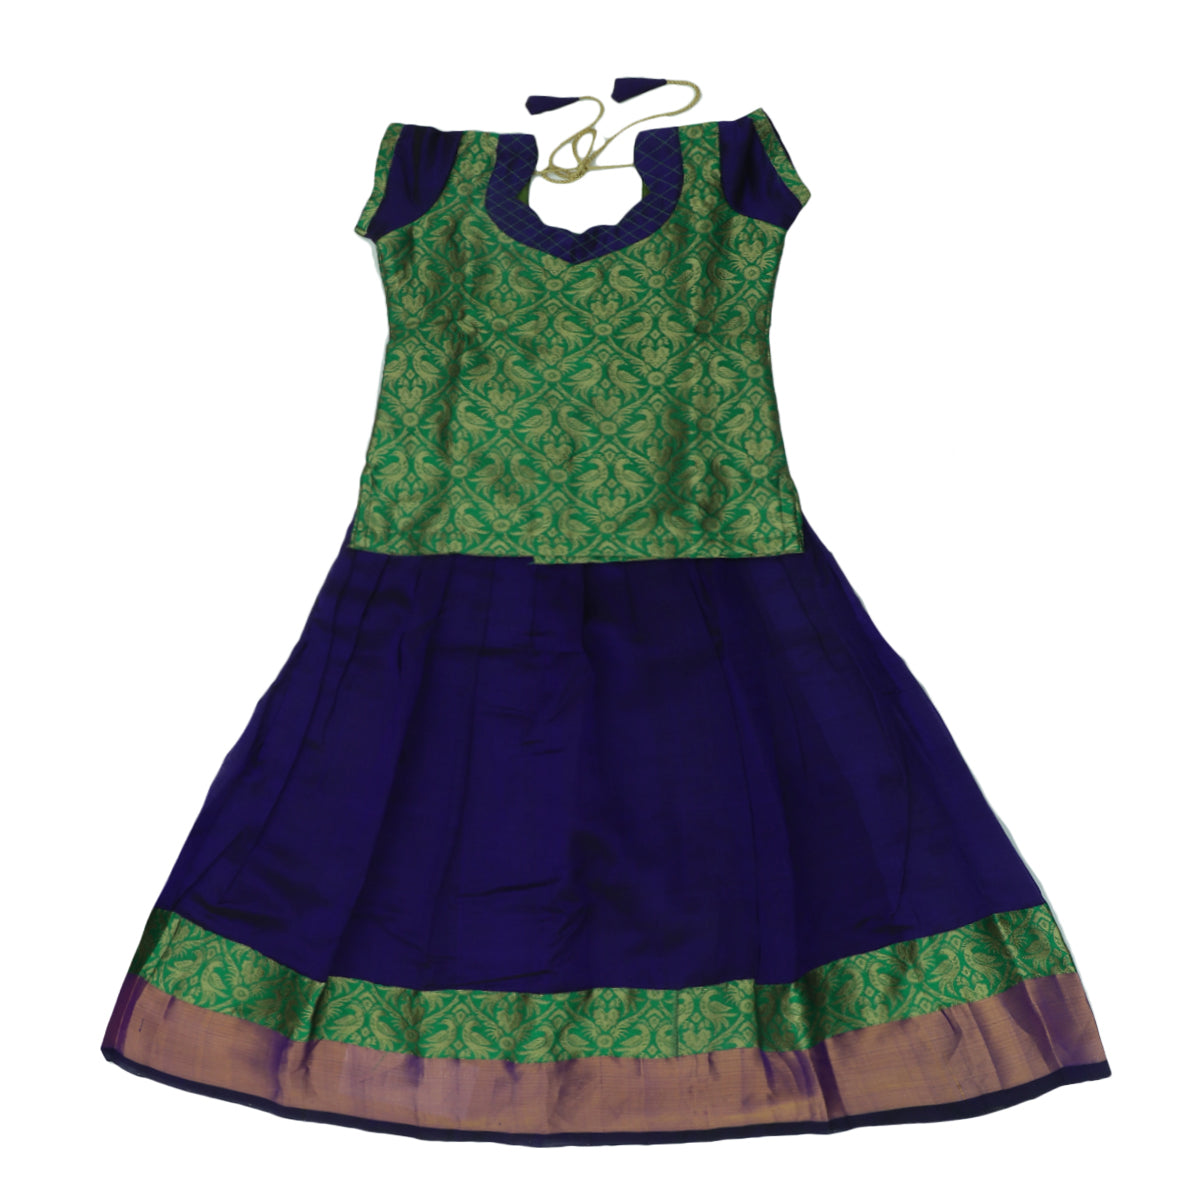 Paavadai Sattai-Light Green and Blue with Zari border(6 years)